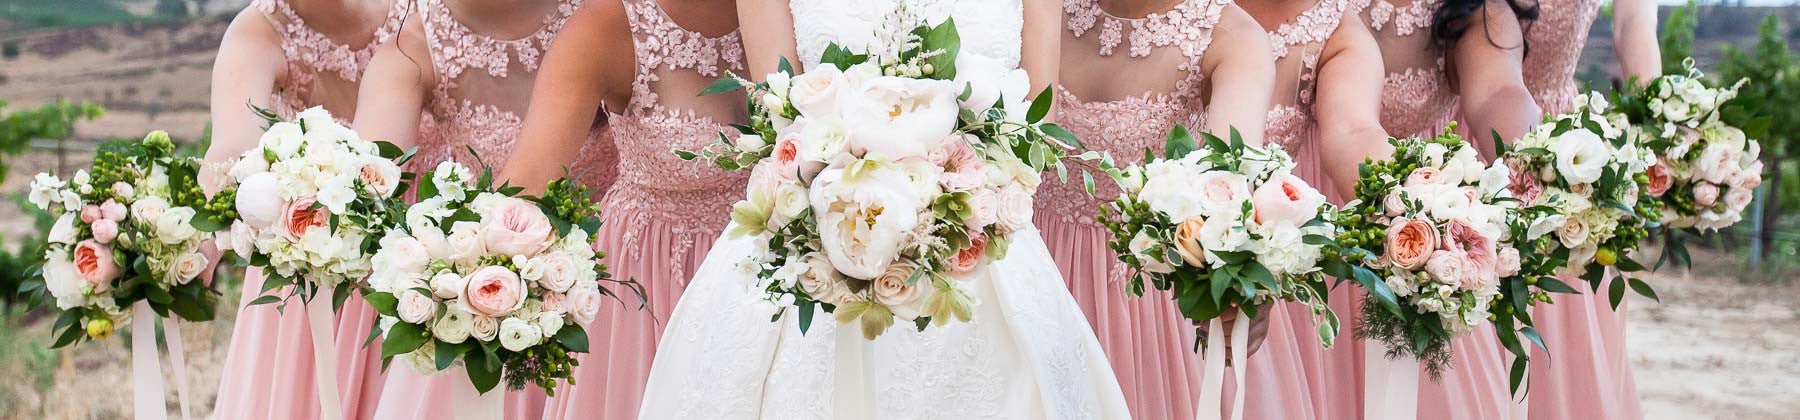 Blush Pink Wedding Flowers by Ruby Blooms